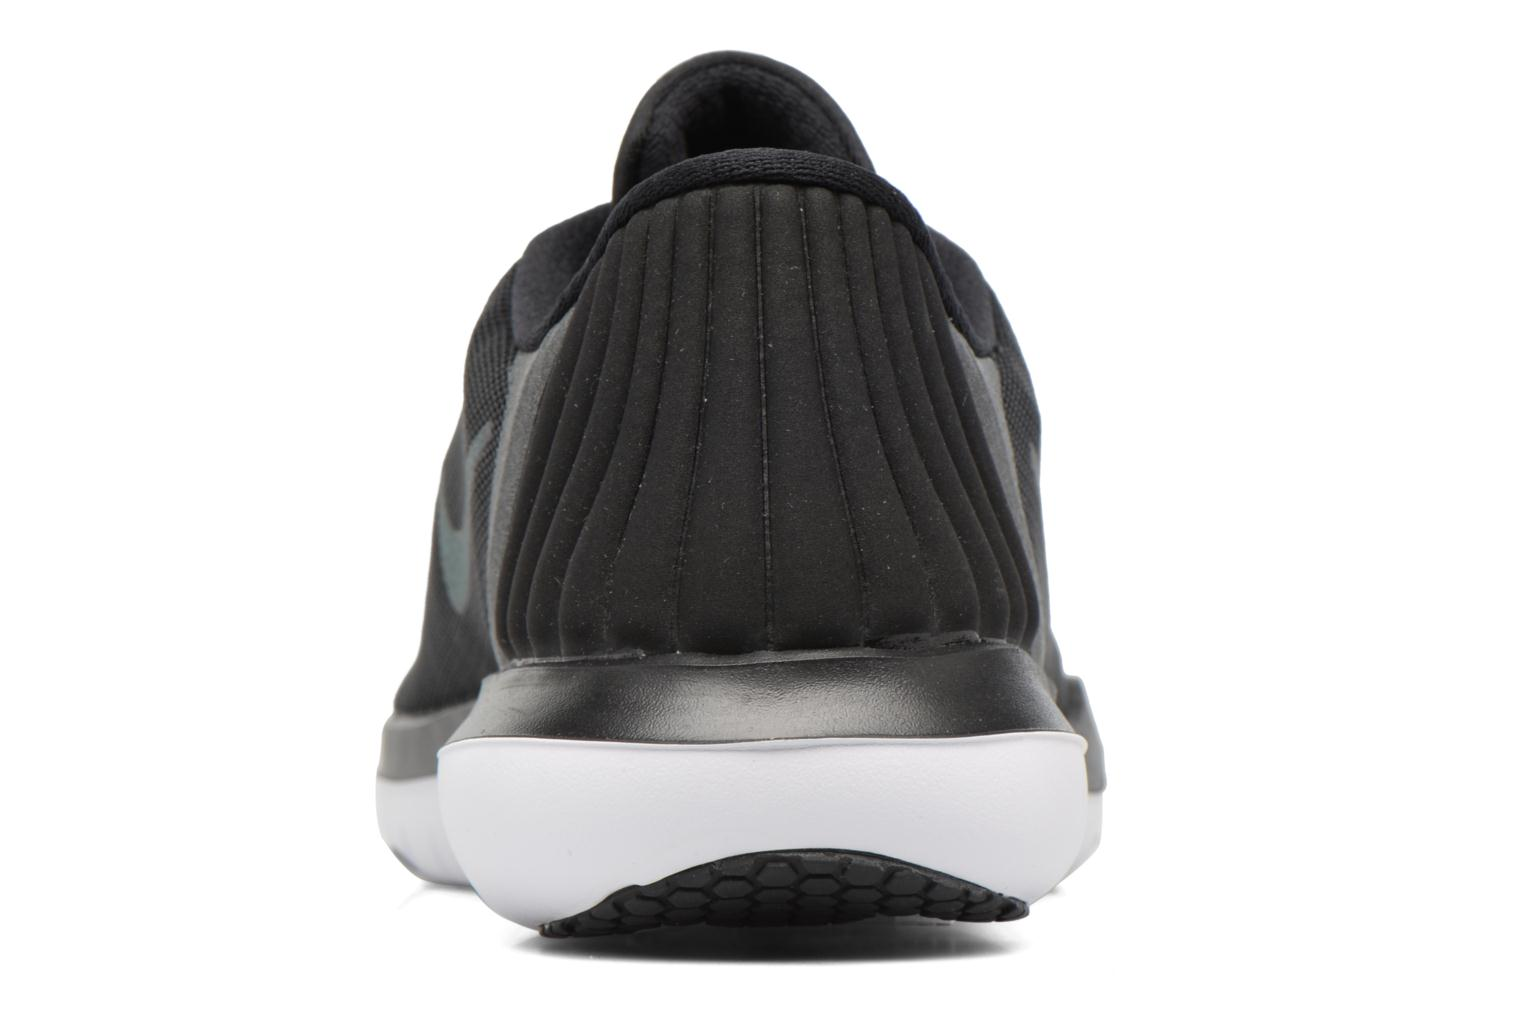 W Nike Flex Supreme Tr 5 Mtlc Black/dark grey